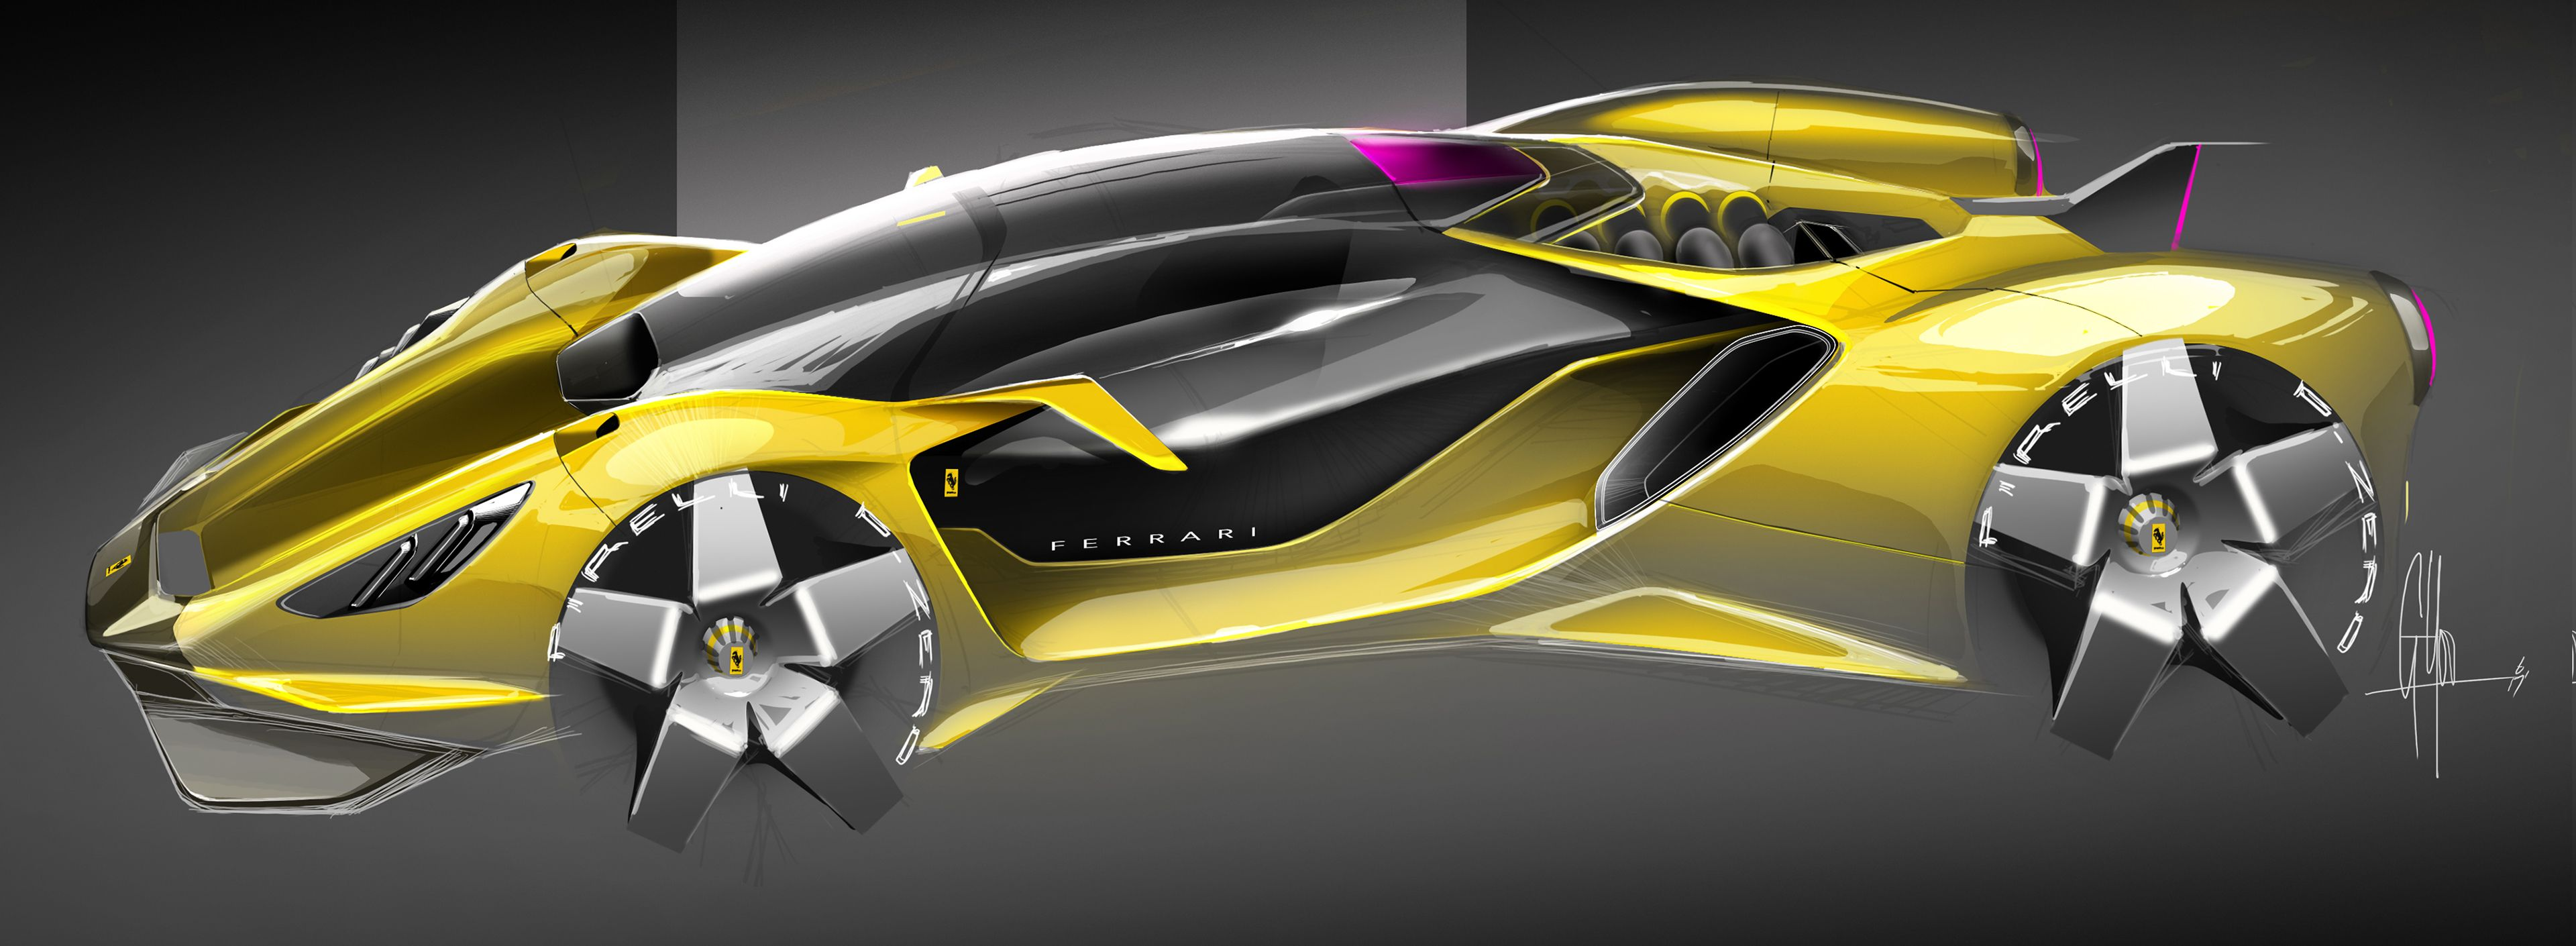 Ferrari Concepts On Behance Concept Cars Futuristic Cars Super Cars